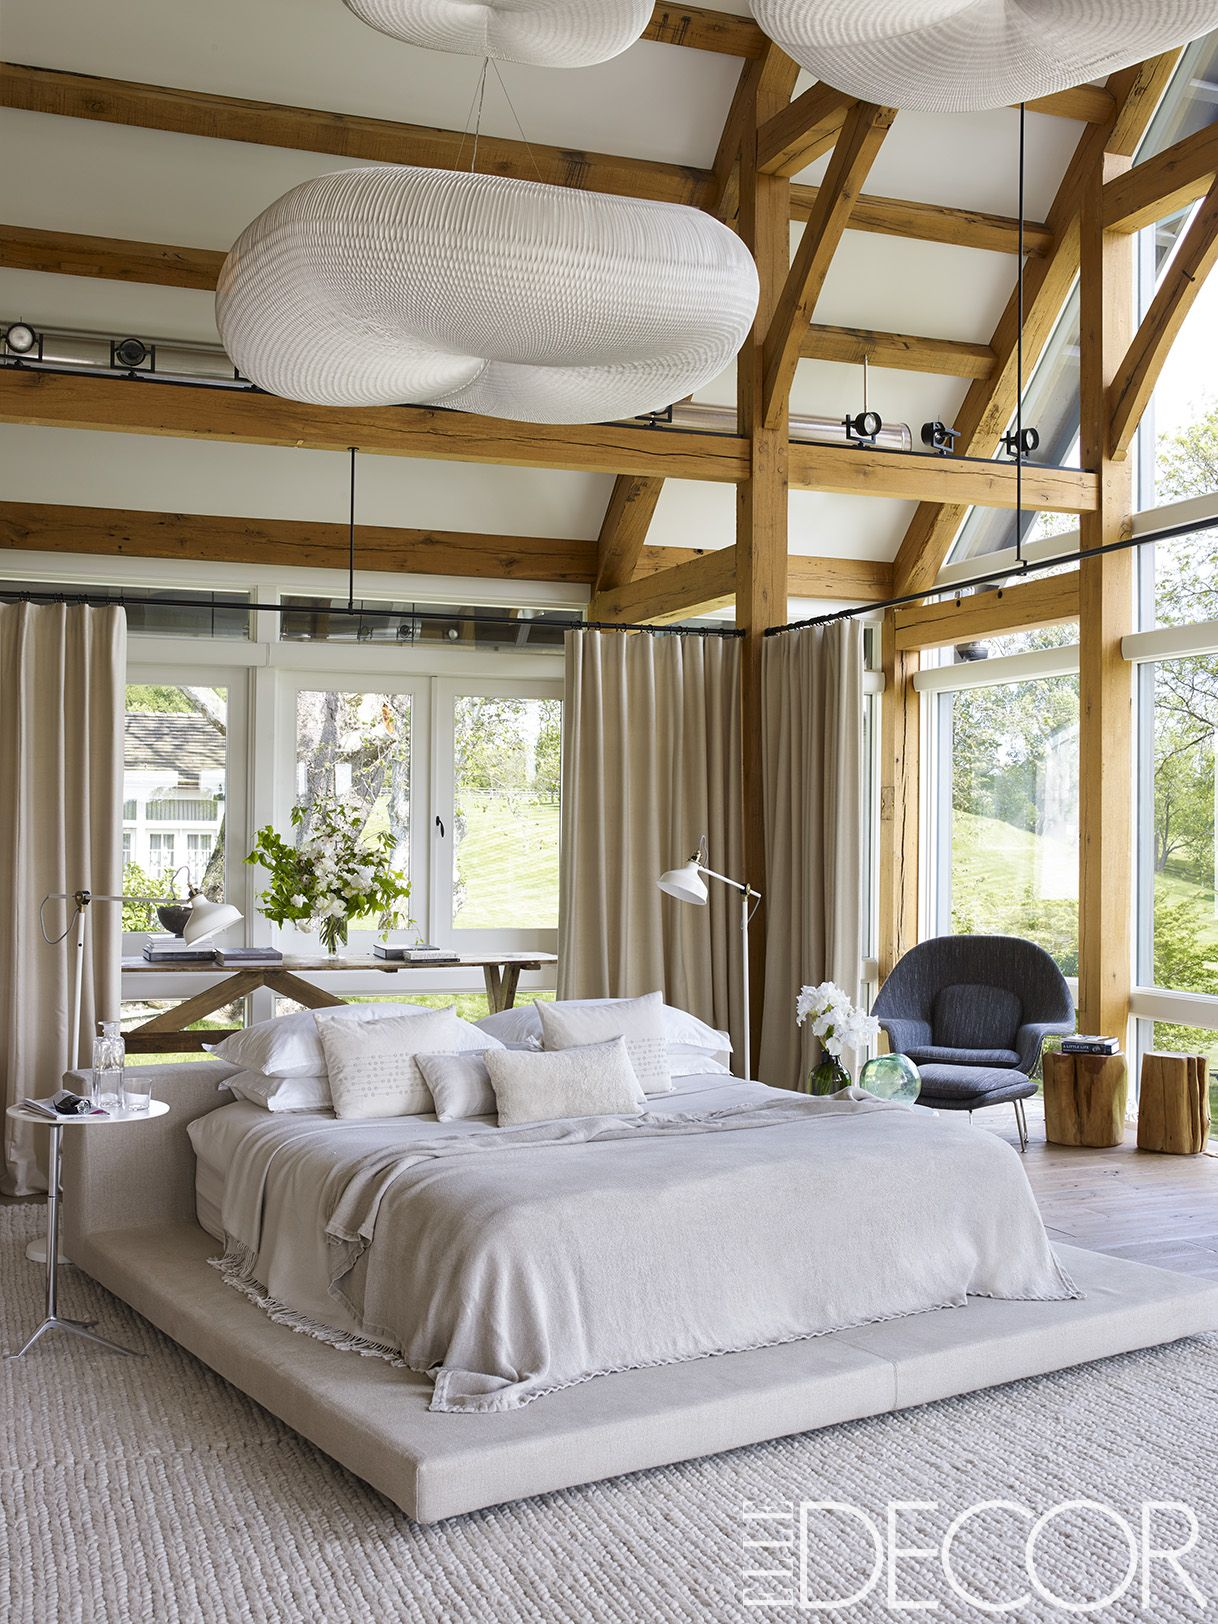 Minimalist Bedroom Decor Ideas: 25 Minimalist Bedroom Decor Ideas